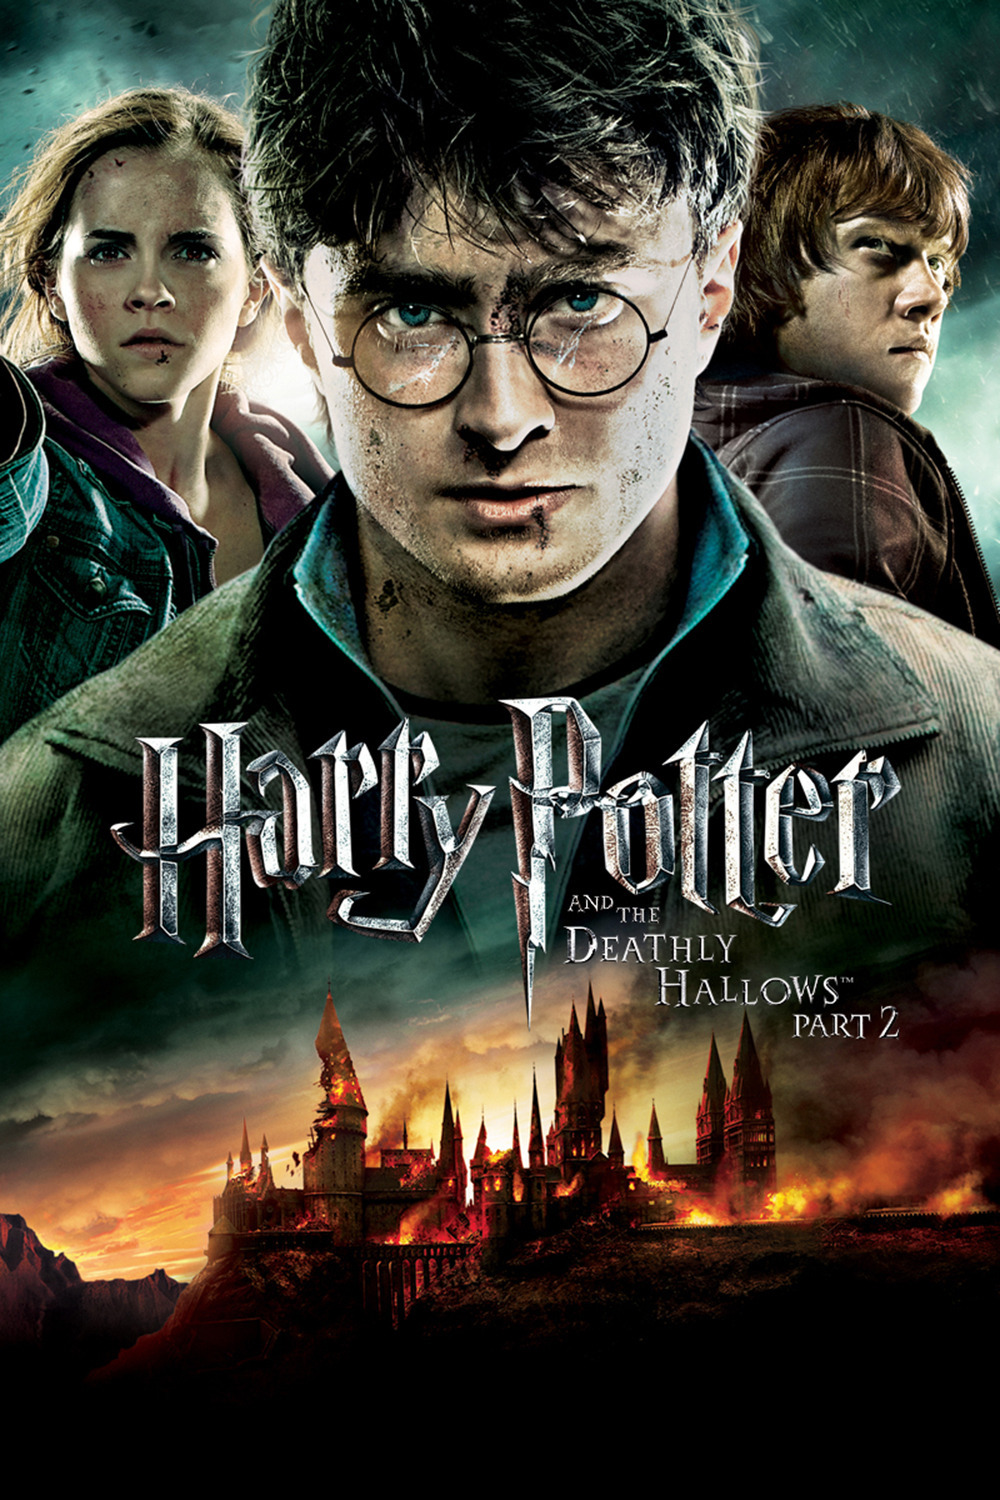 movie poster harry potter and the deathly hallows part 2